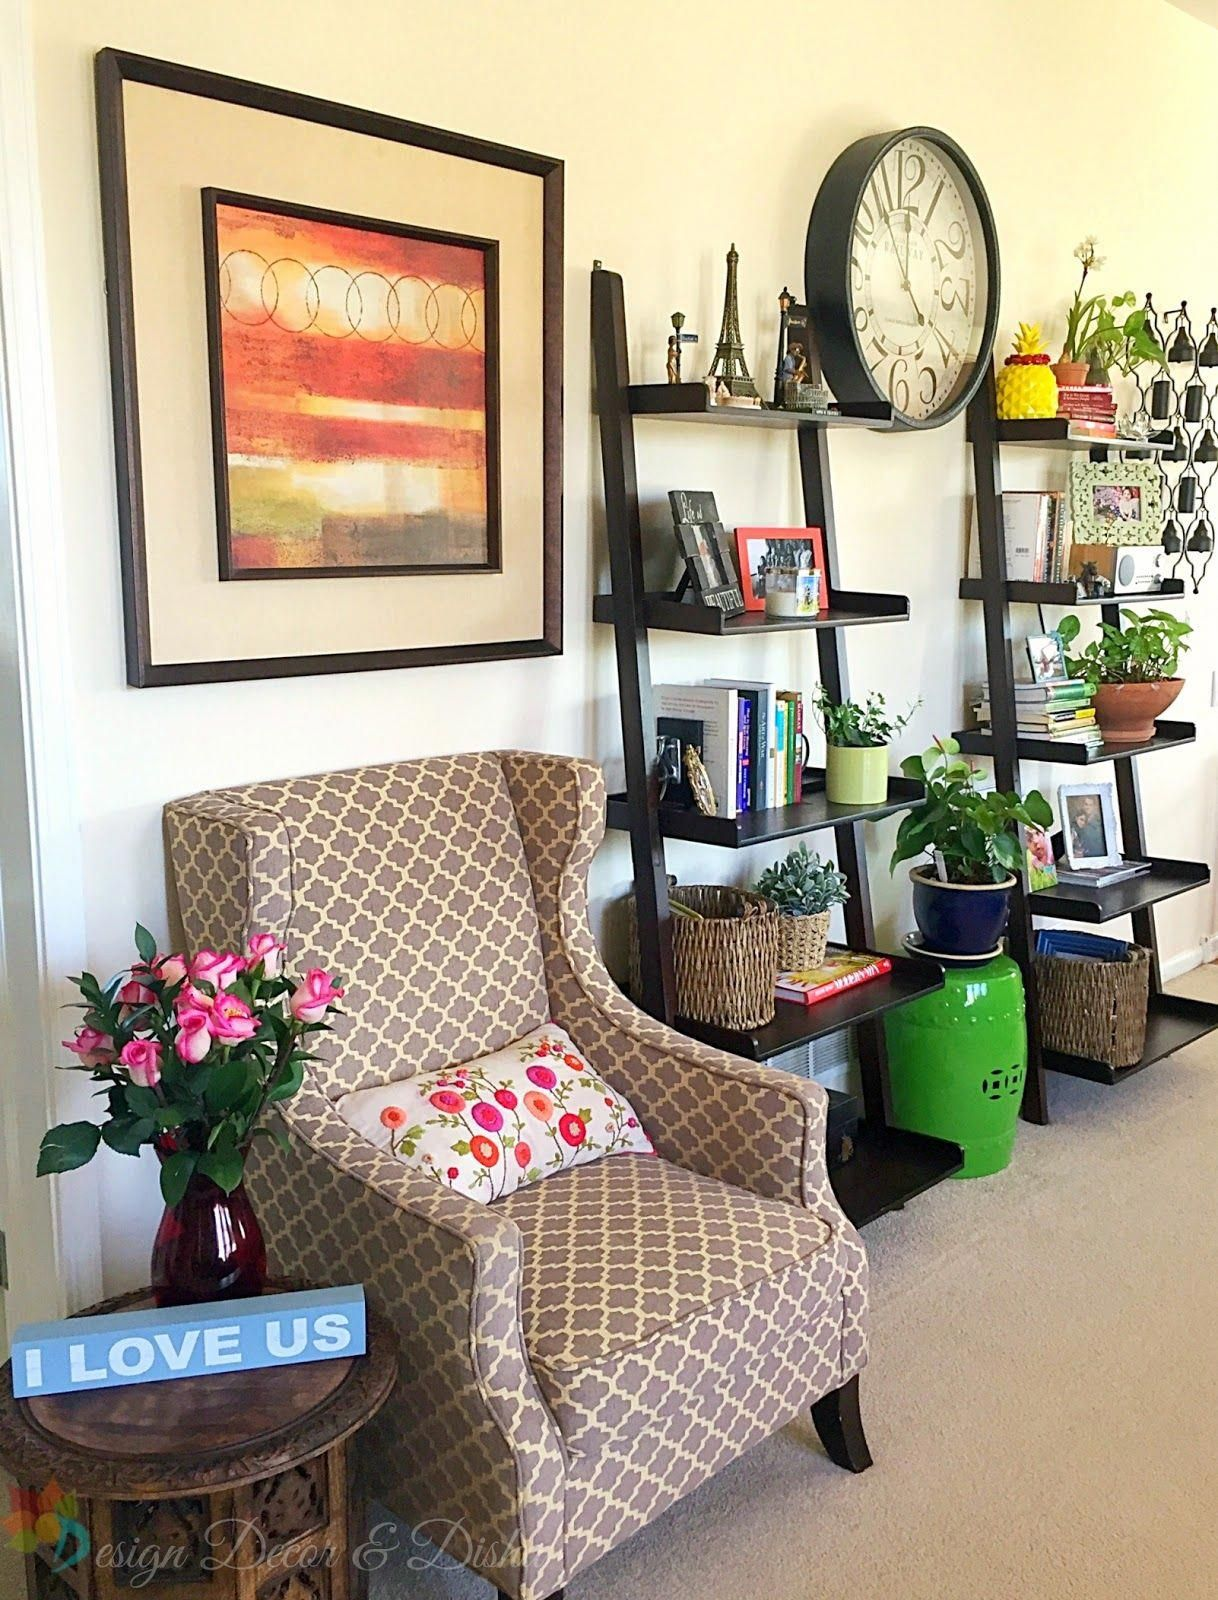 An Indian Design Decor Blog Home Tour Chitra Seetharaman: Lovely Decorating And Styling Tips To Create A Stunning